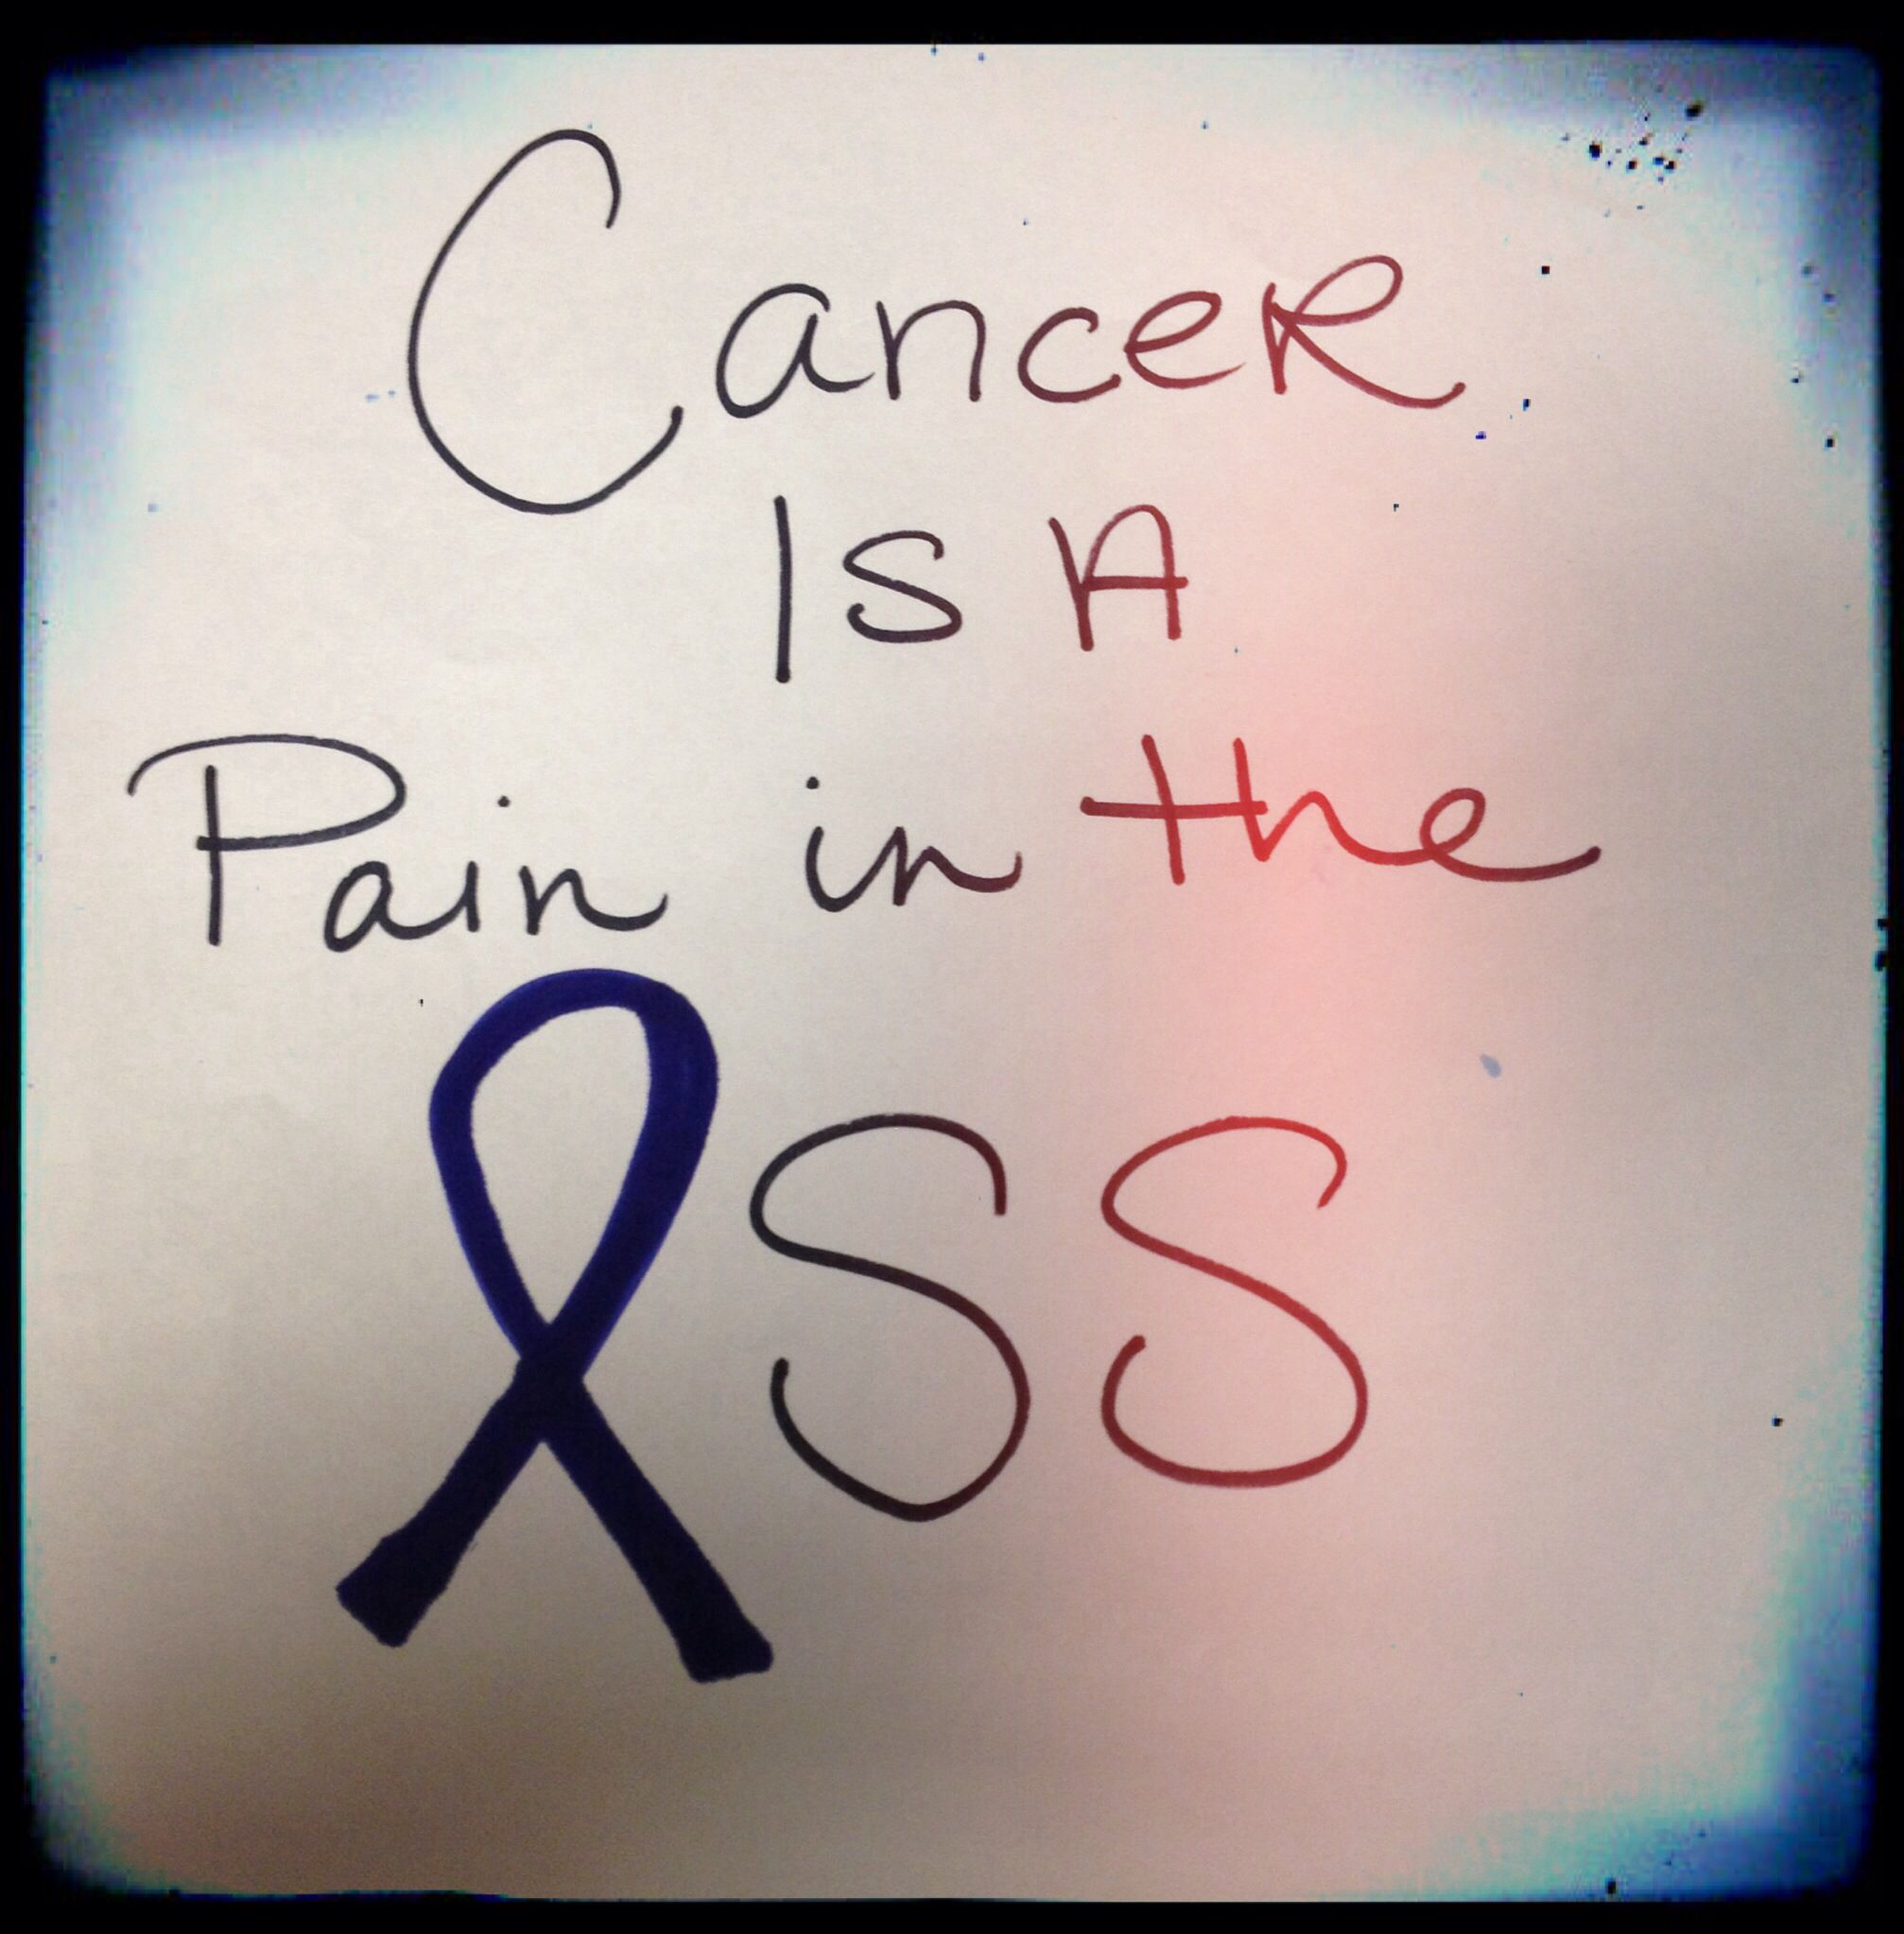 083a7363b0aec6de56e7593ae9d63fe8 colon cancer mom pinterest cancer awareness, inspirational